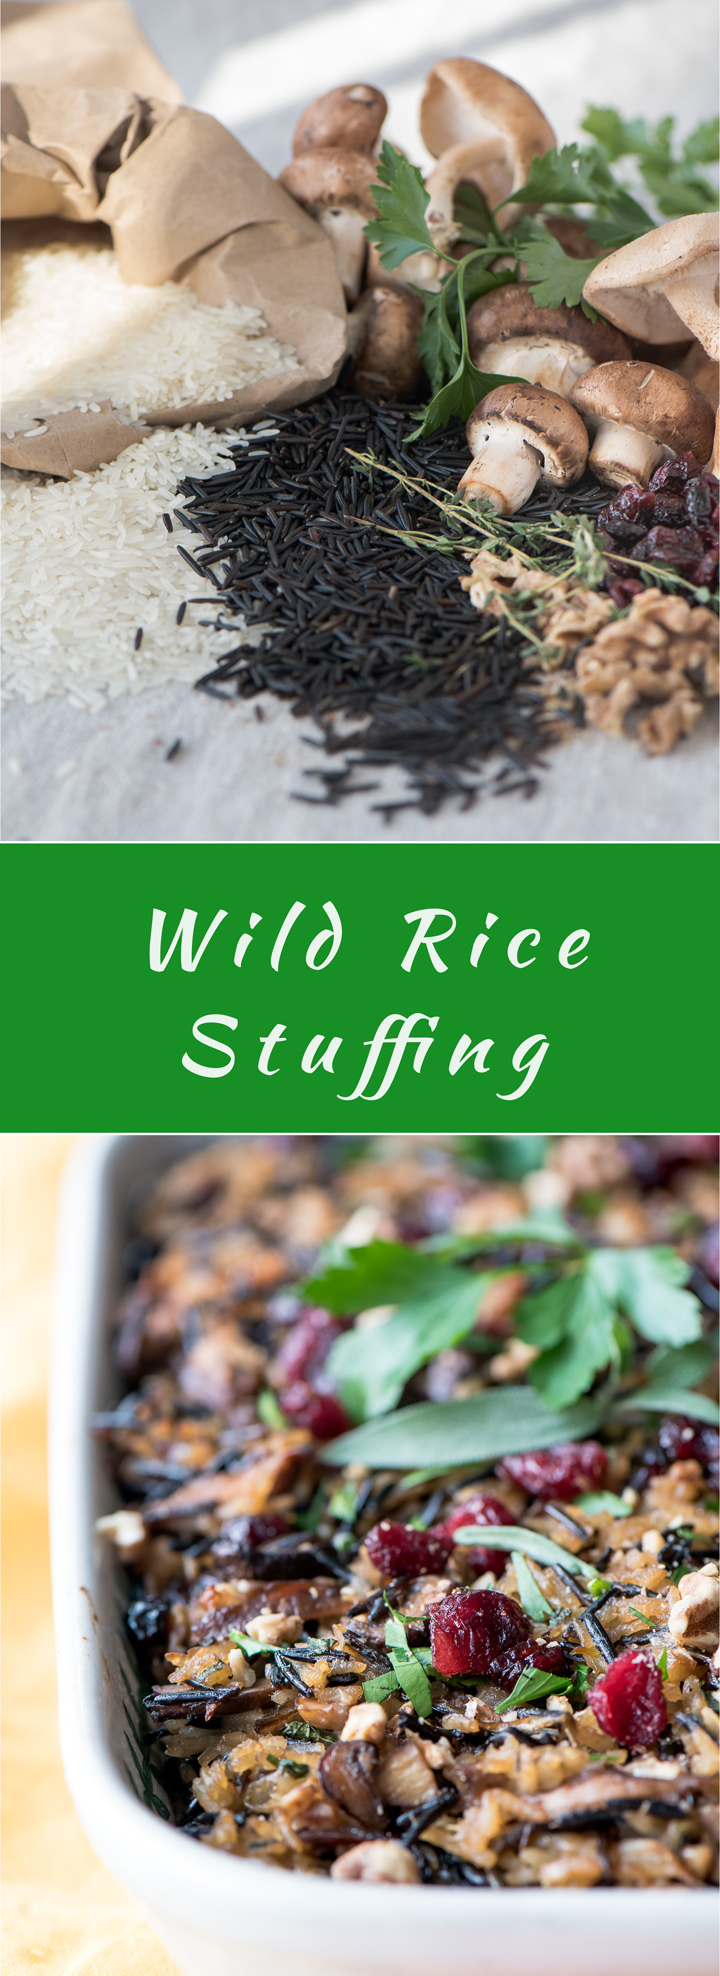 Wild Rice Stuffing with Mushrooms and Cranberries recipe. Wild rice stuffings is a gluten-free alternative to traditional stuffing on Thanksgiving. It also makes a hearty side dish for all the other fall and winter nights. Pair with roasted meats or fish.